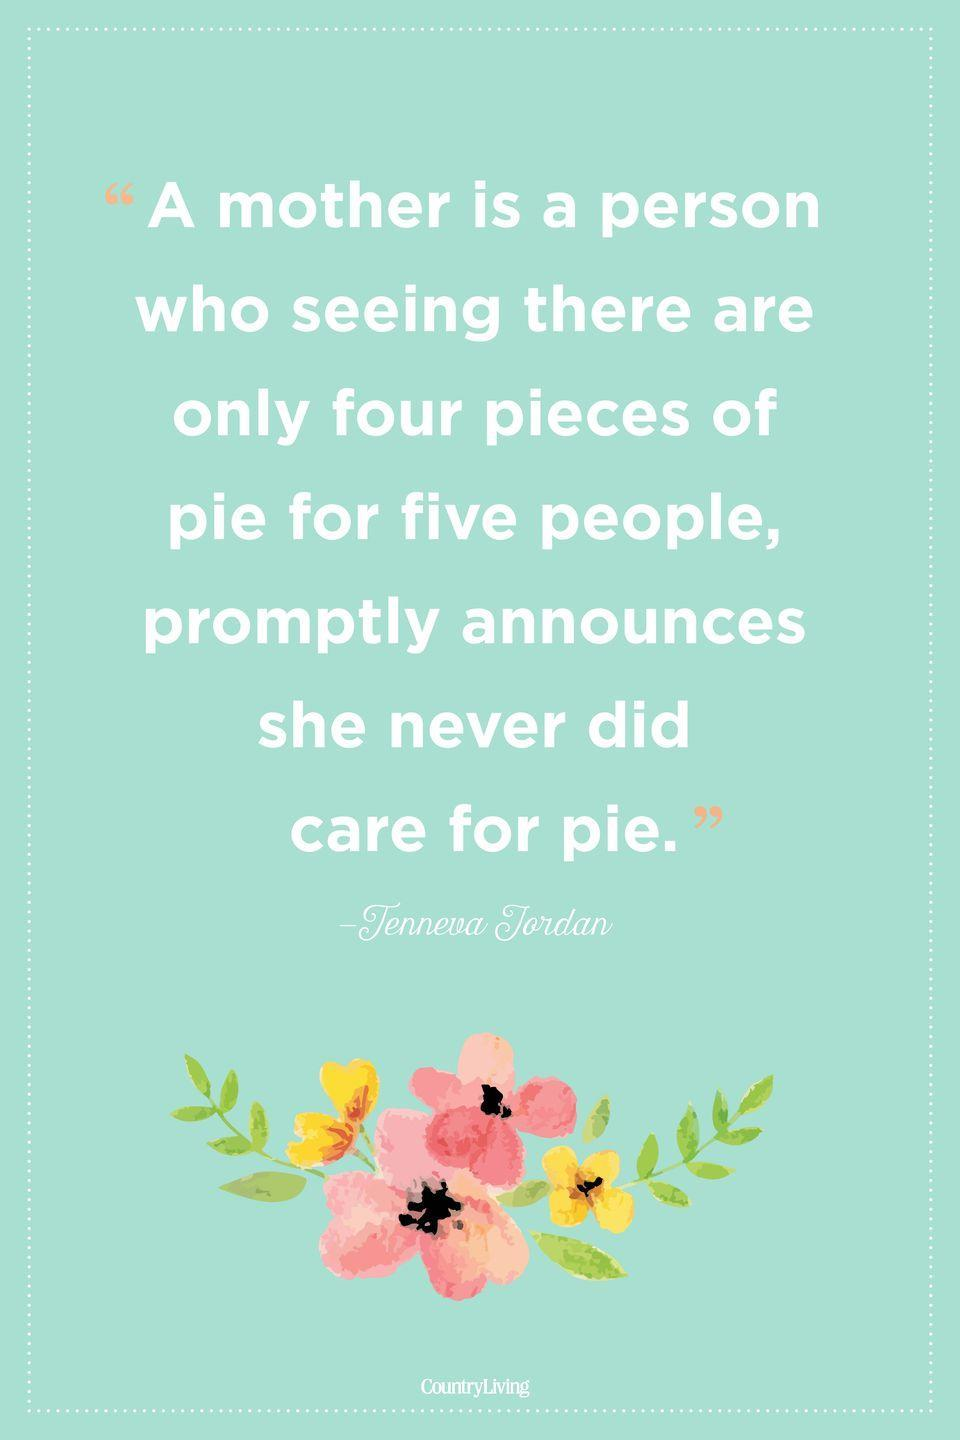 "<p>""A mother is a person who seeing there are only four pieces of pie for five people, promptly announces she never did care for pie.""</p>"